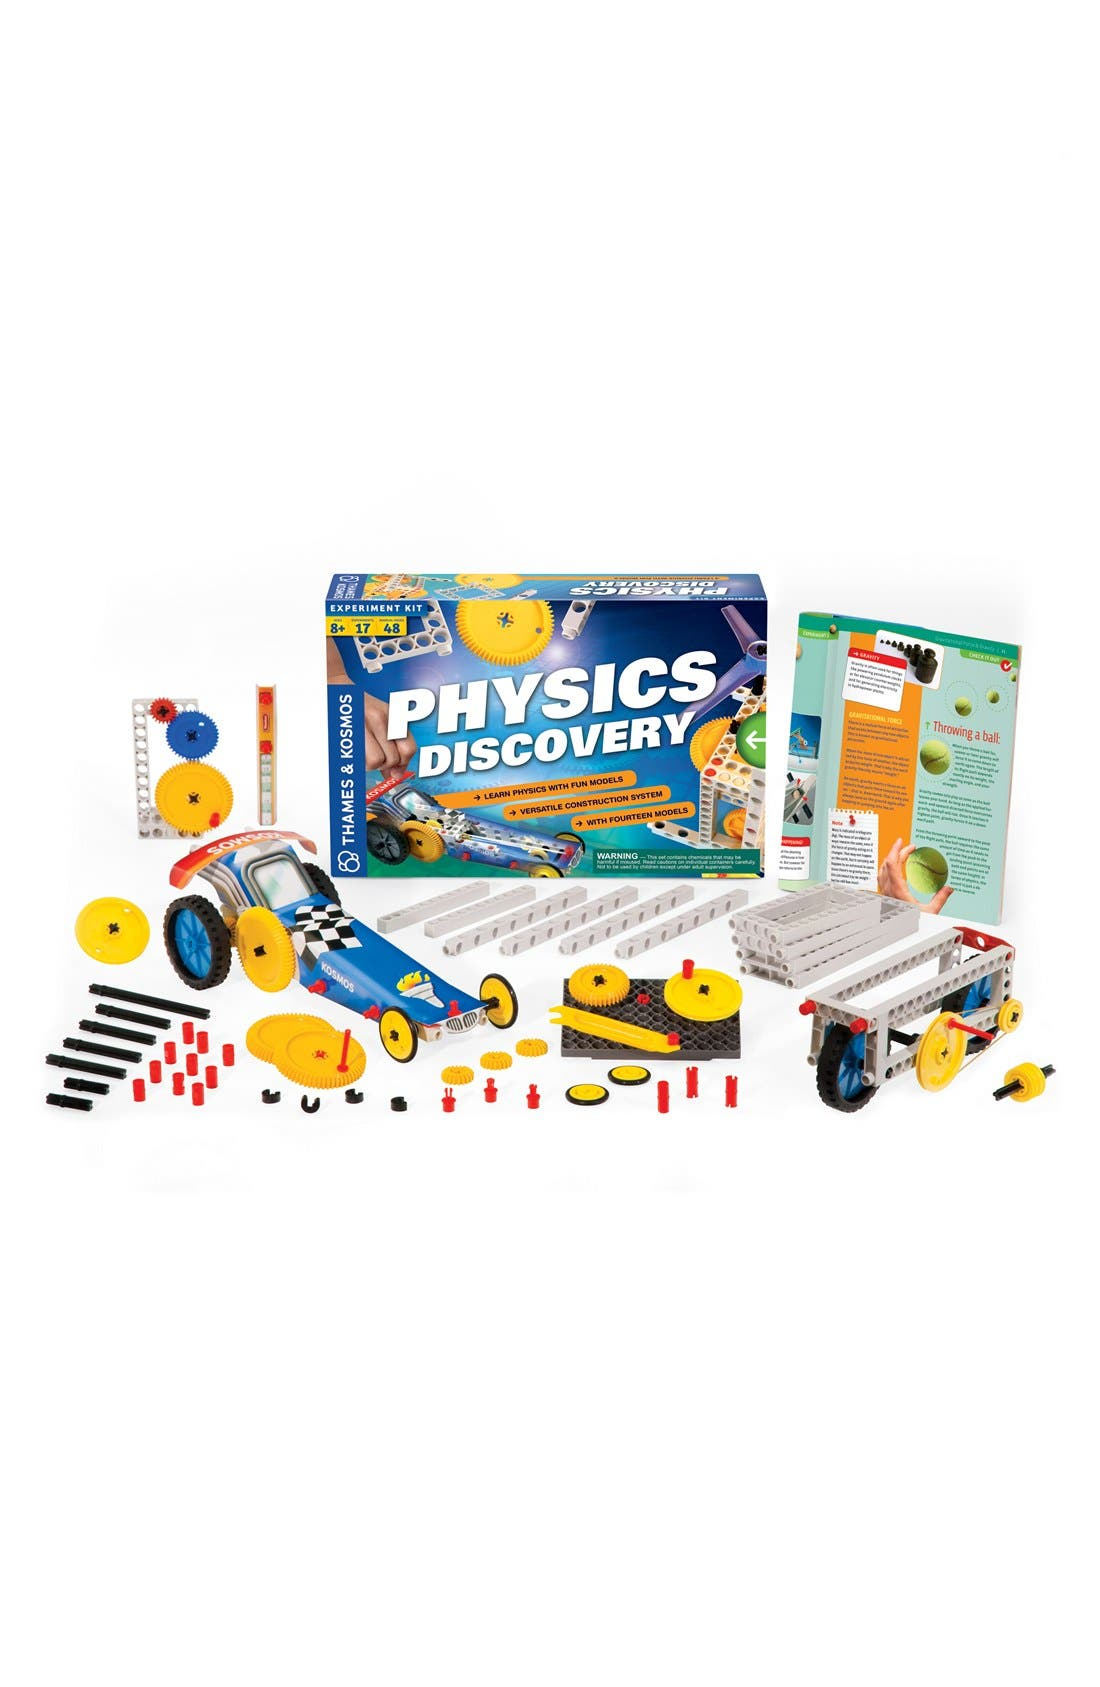 Alternate Image 1 Selected - Thames & Kosmos 'Physics Discovery 2.0' Experiment Kit